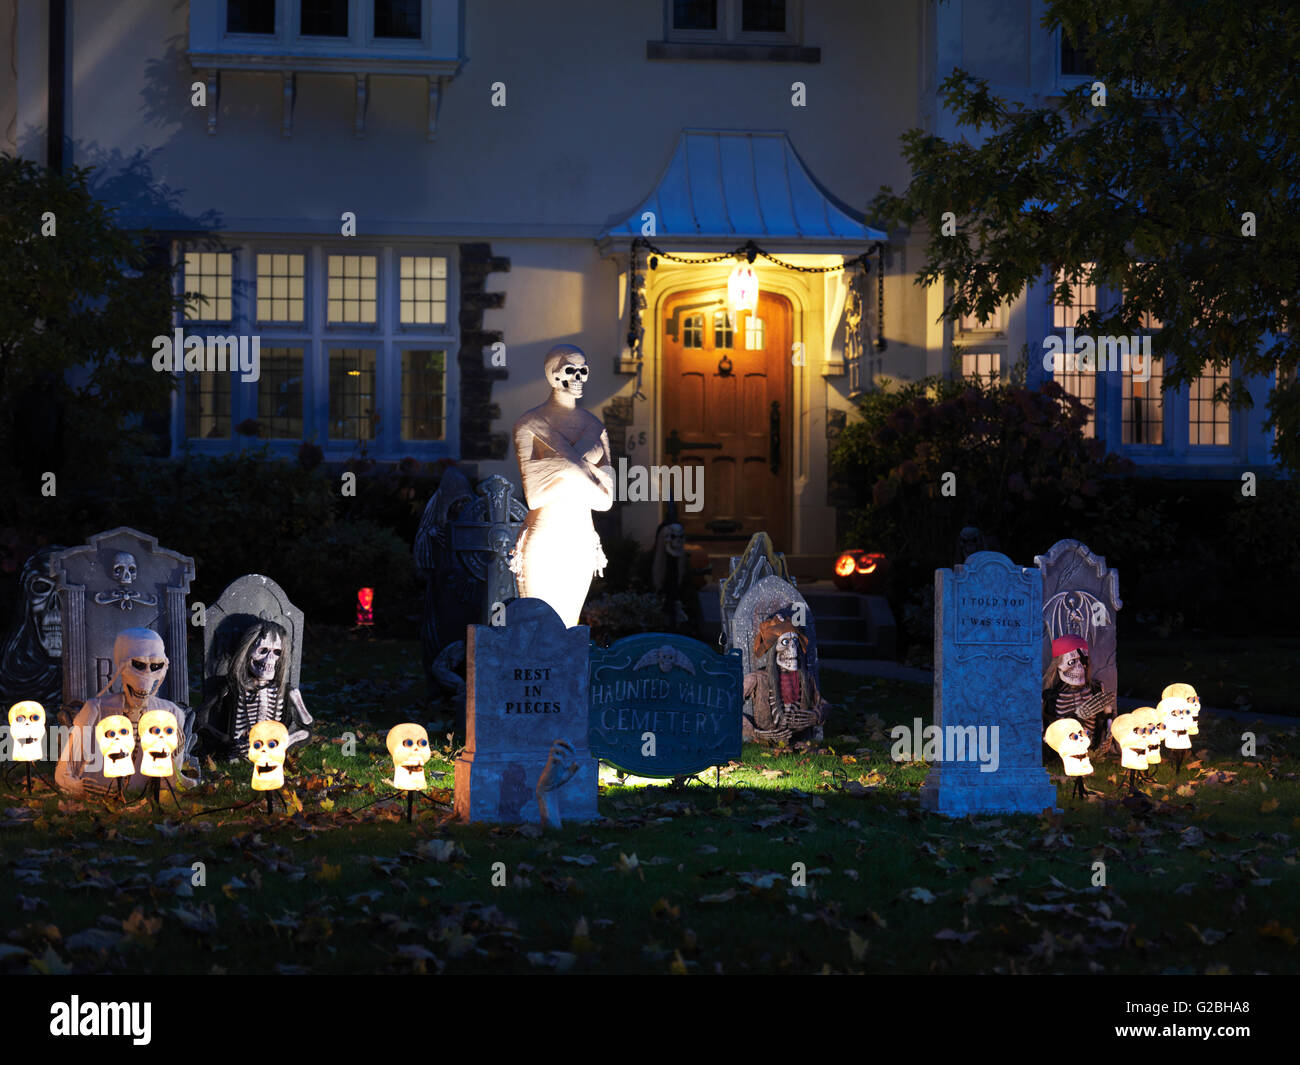 Spooky Halloween decoration in the front yard of a house, Toronto, Canada - Stock Image